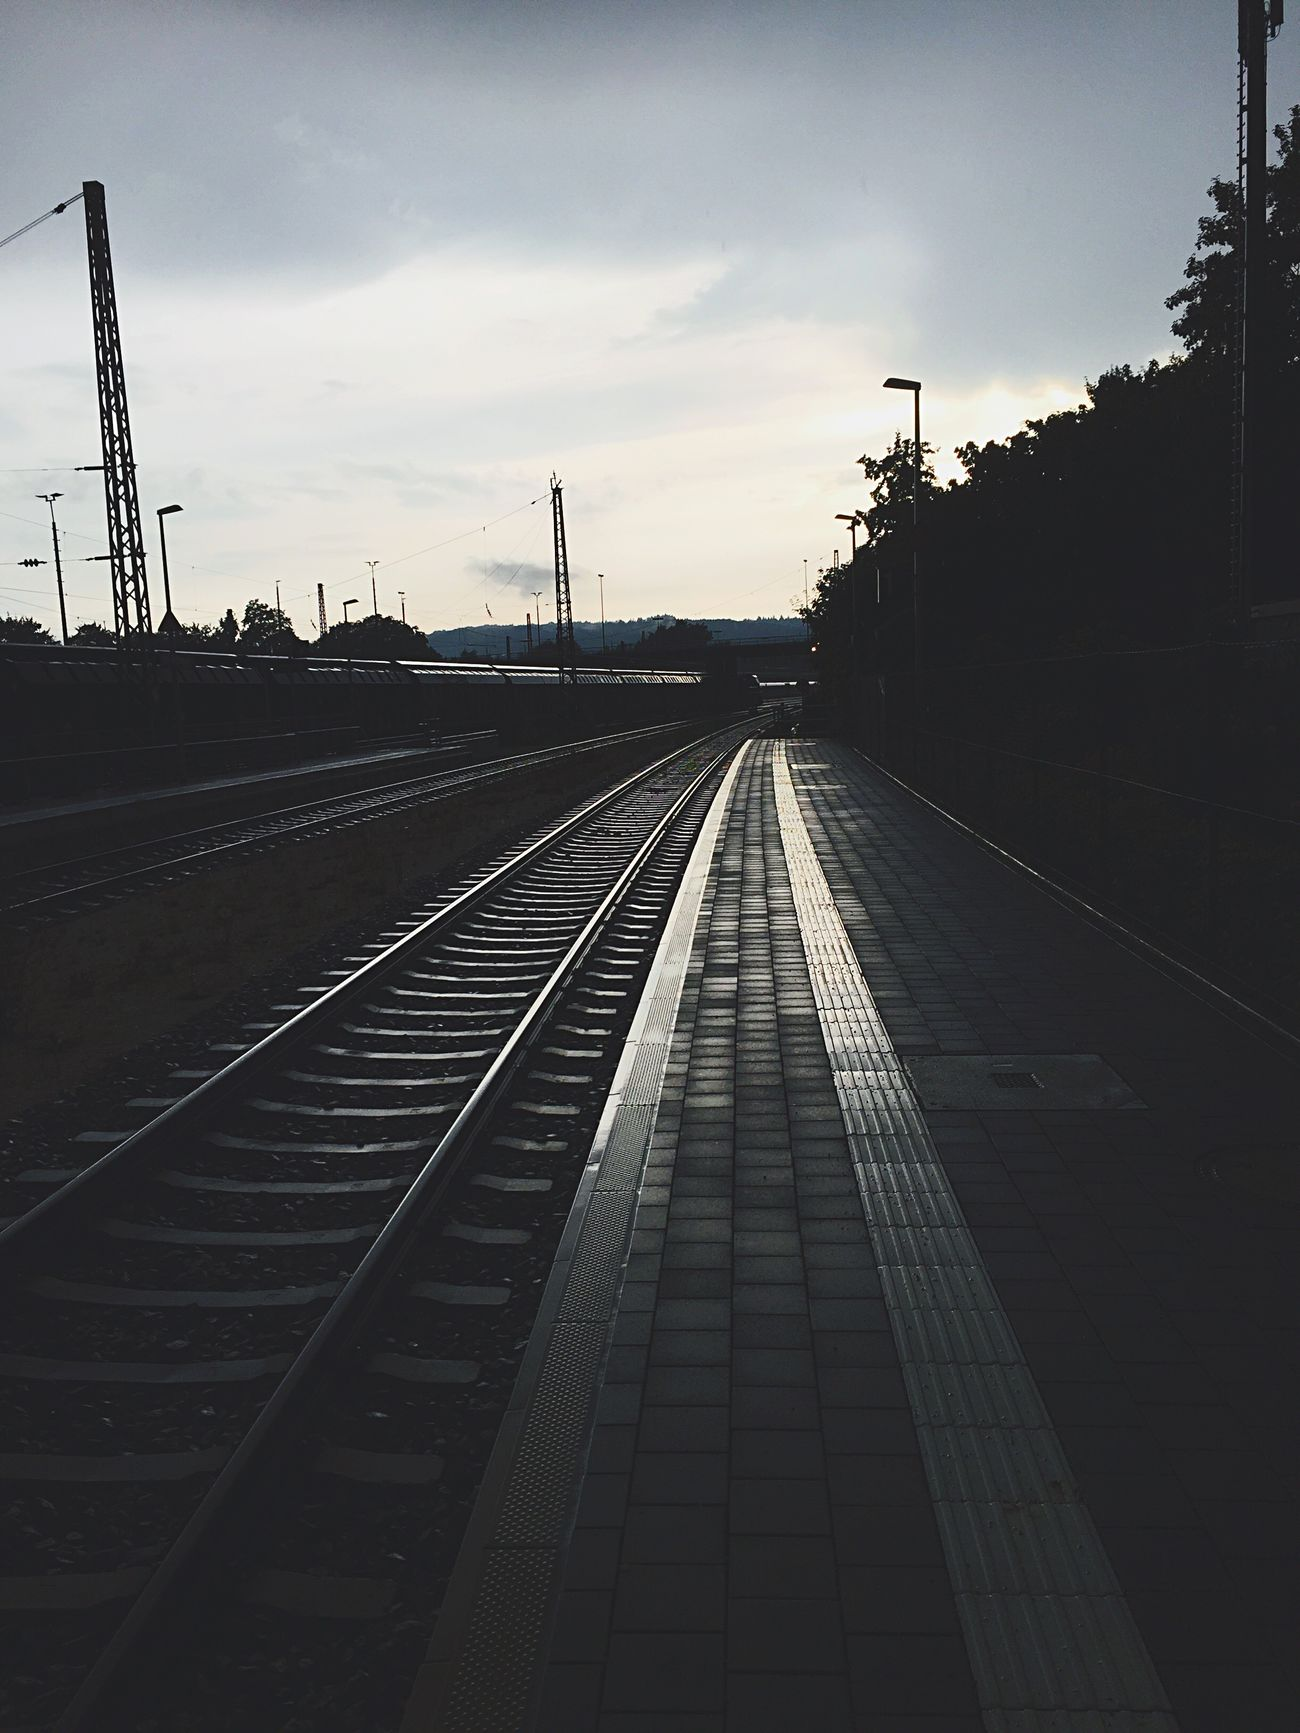 Grey Grey Sky Railroad Track Rail Transportation The Way Forward Outdoors Sky Train Station Darkness And Light Dark Monotone Simple Photography Simple Beauty Silence Simple Things In Life Minimalism Minimalistic